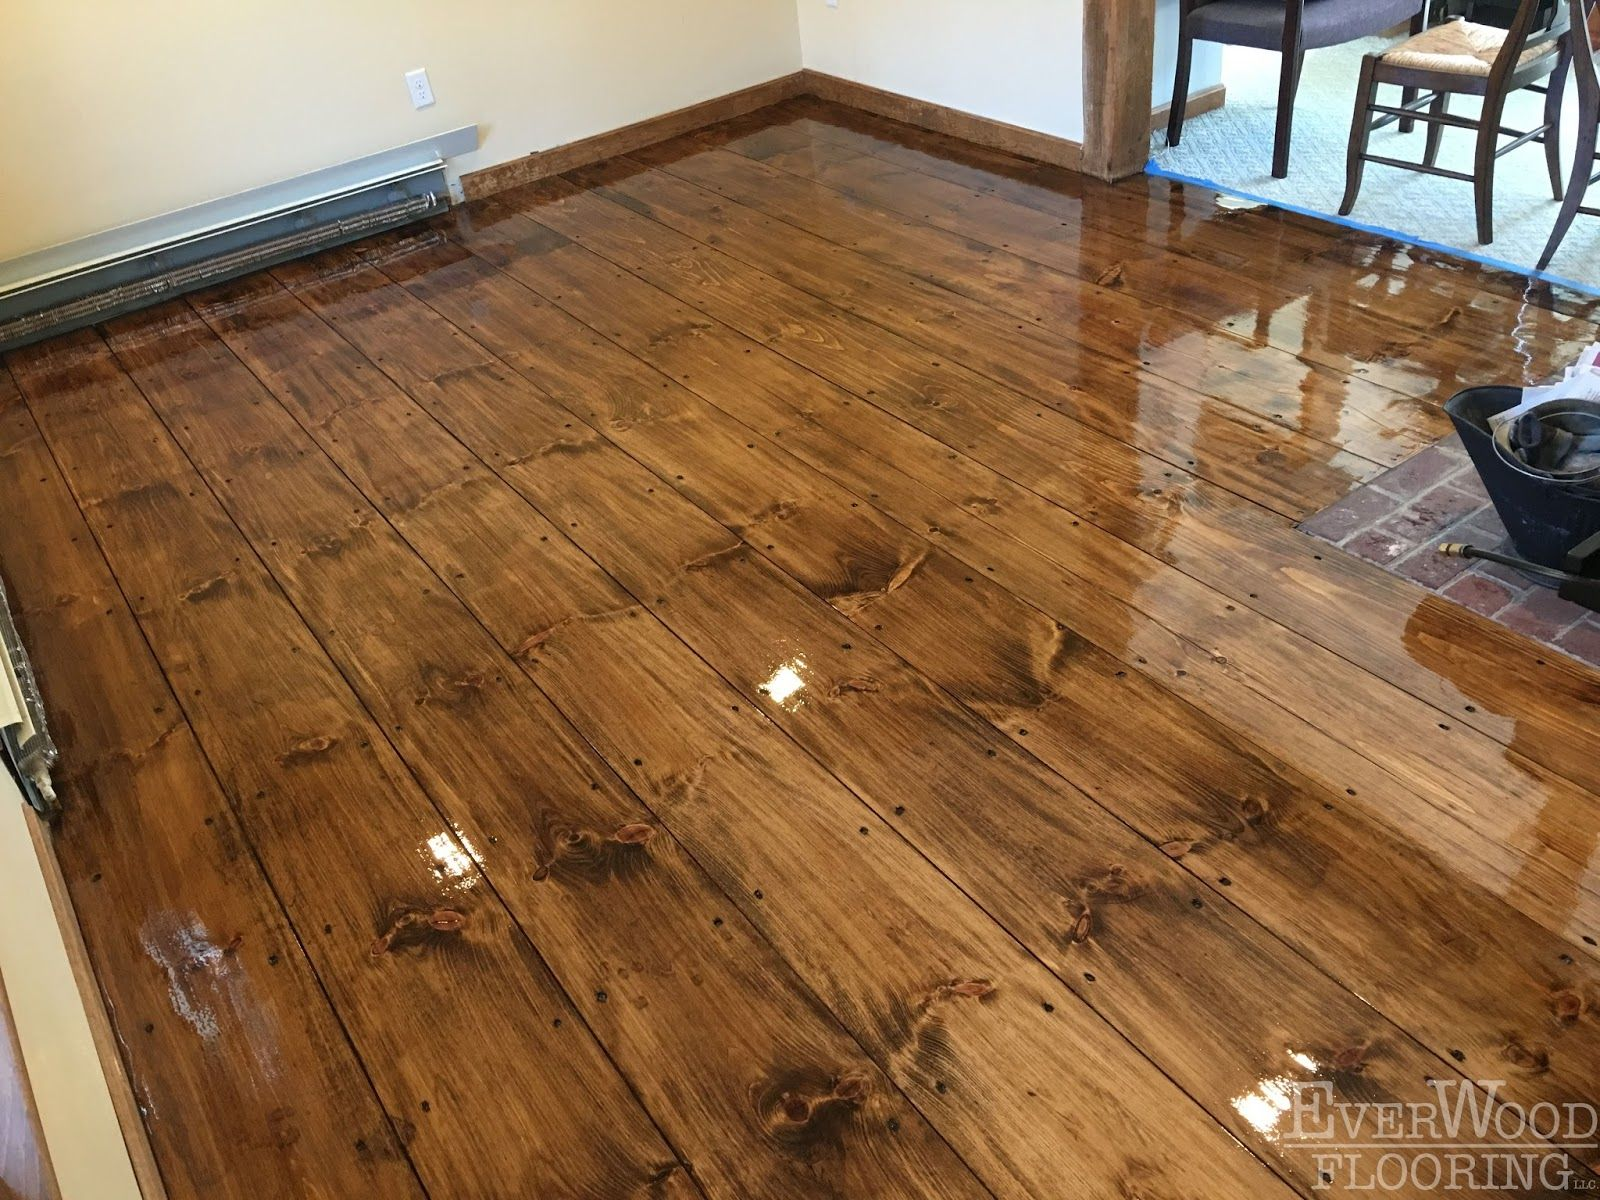 This Project Is So Much More Than A Refinish Because The Original Floor Was An Orange Colored Pine With A Lot Of Wear And Tear Plank Holzfussboden Haus Design